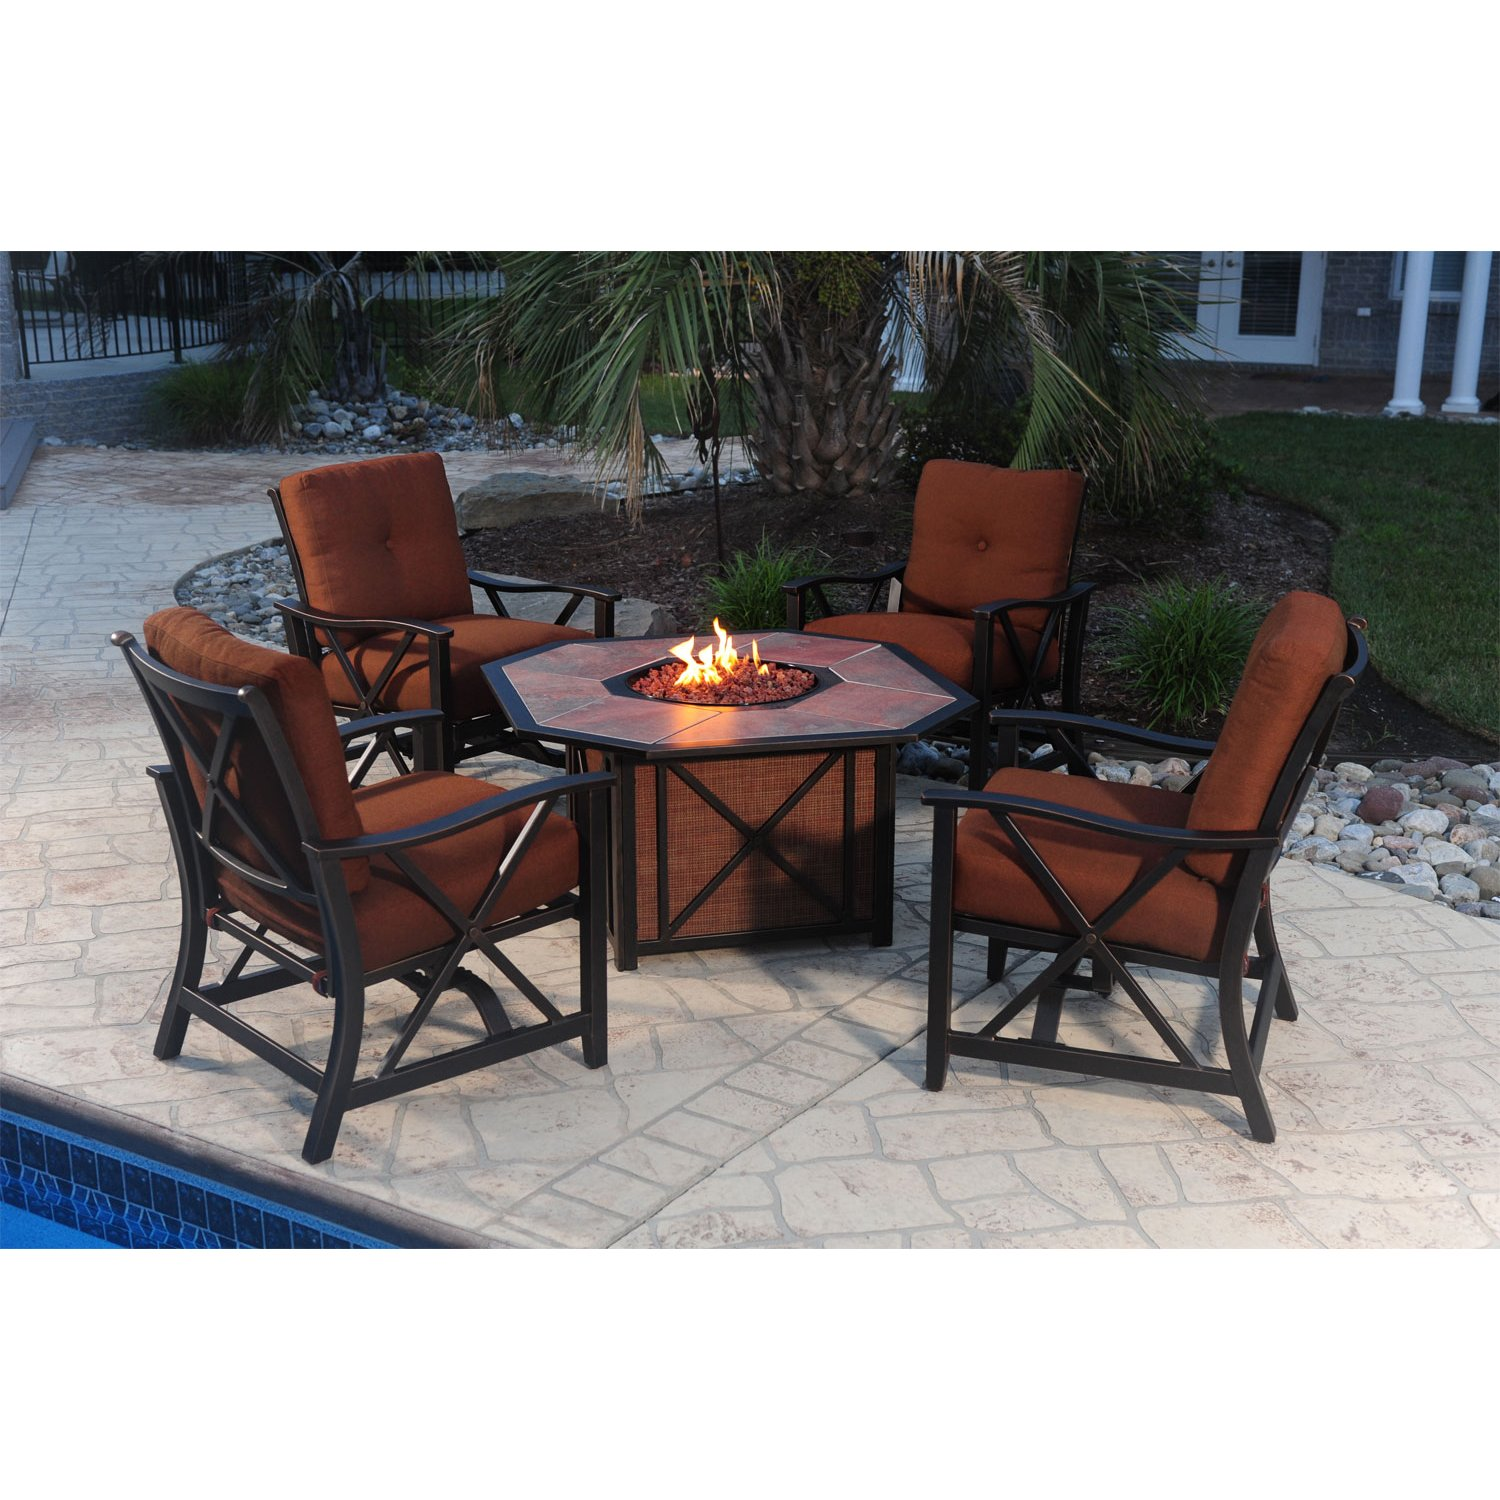 beautiful dining piece rc of tables garden sets harrison willey oasis patio furniture lovely set